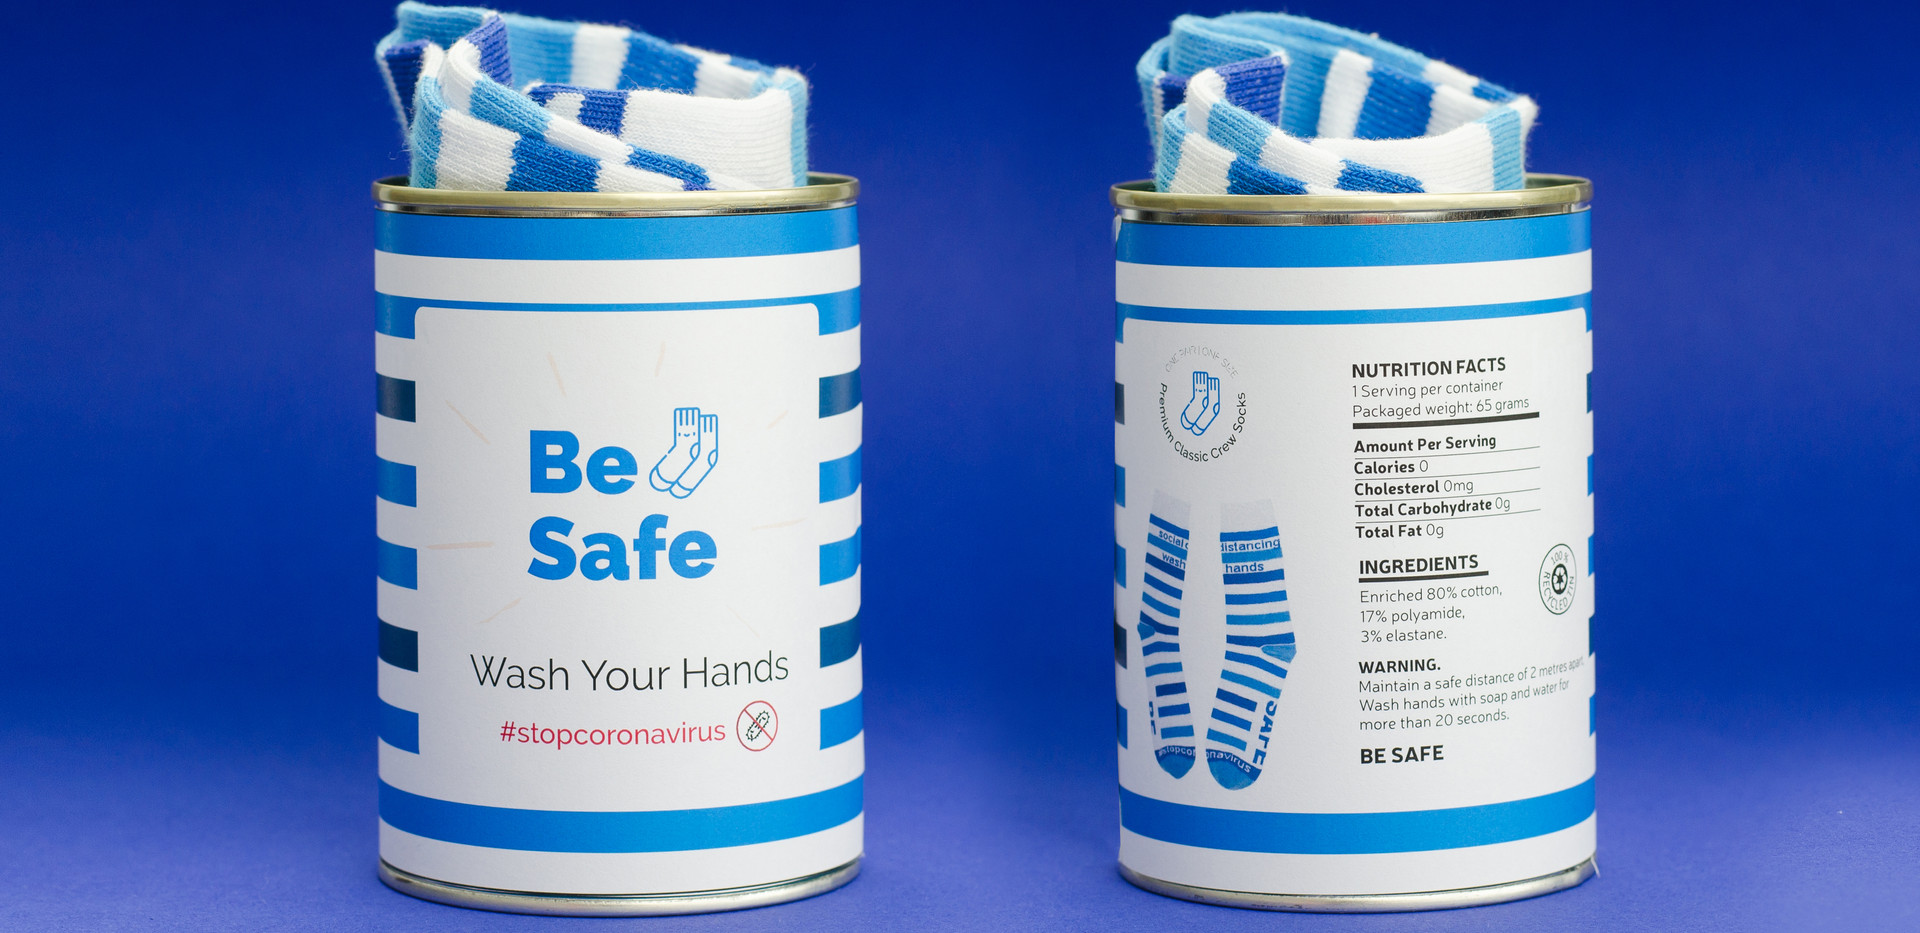 BE SAFE SOCKS AND HYGIENE PRODUCTS IN A TIN